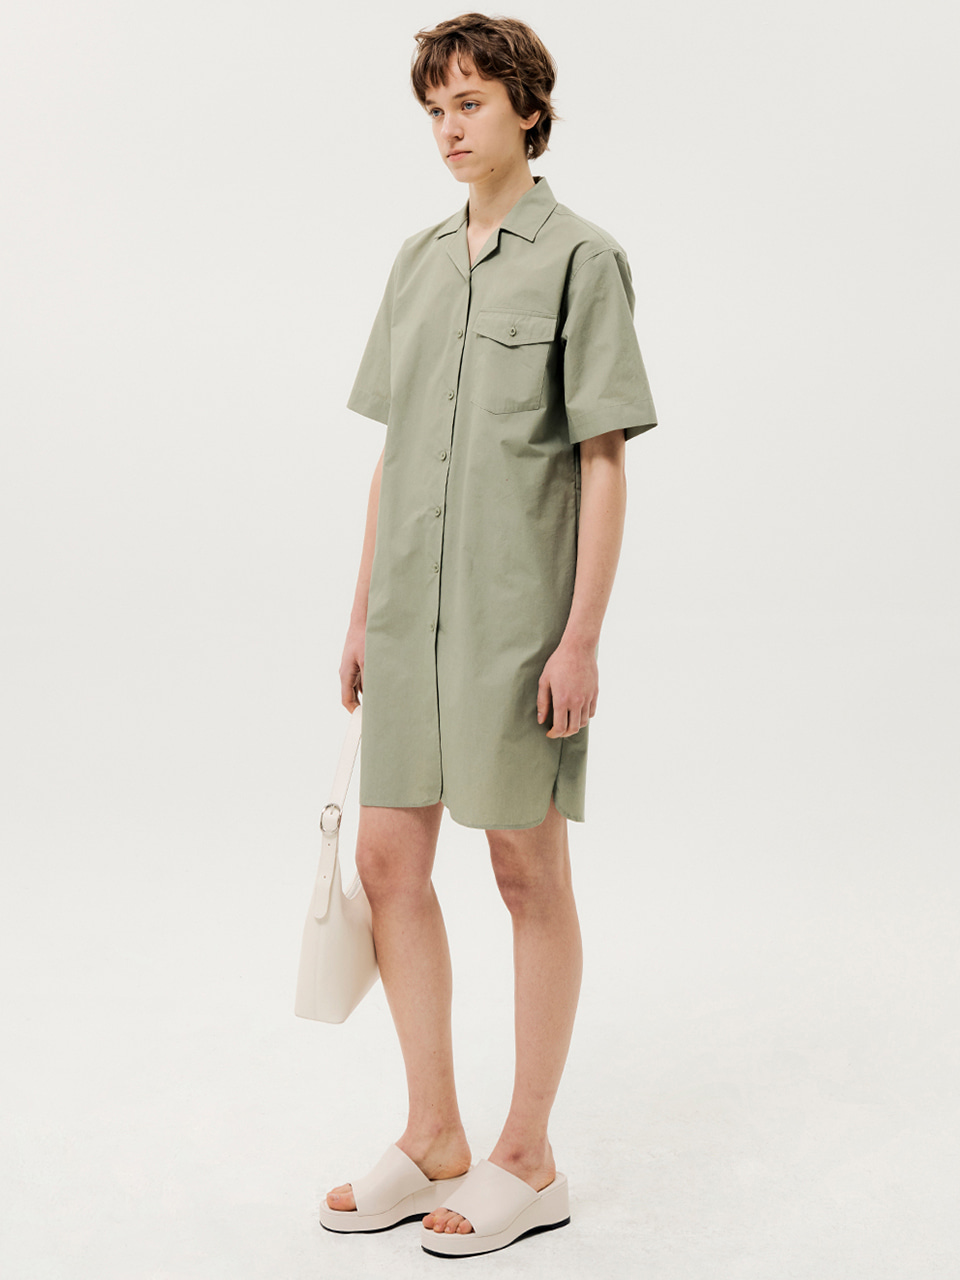 One Pocket Short Sleeve Shirts Dress Khaki